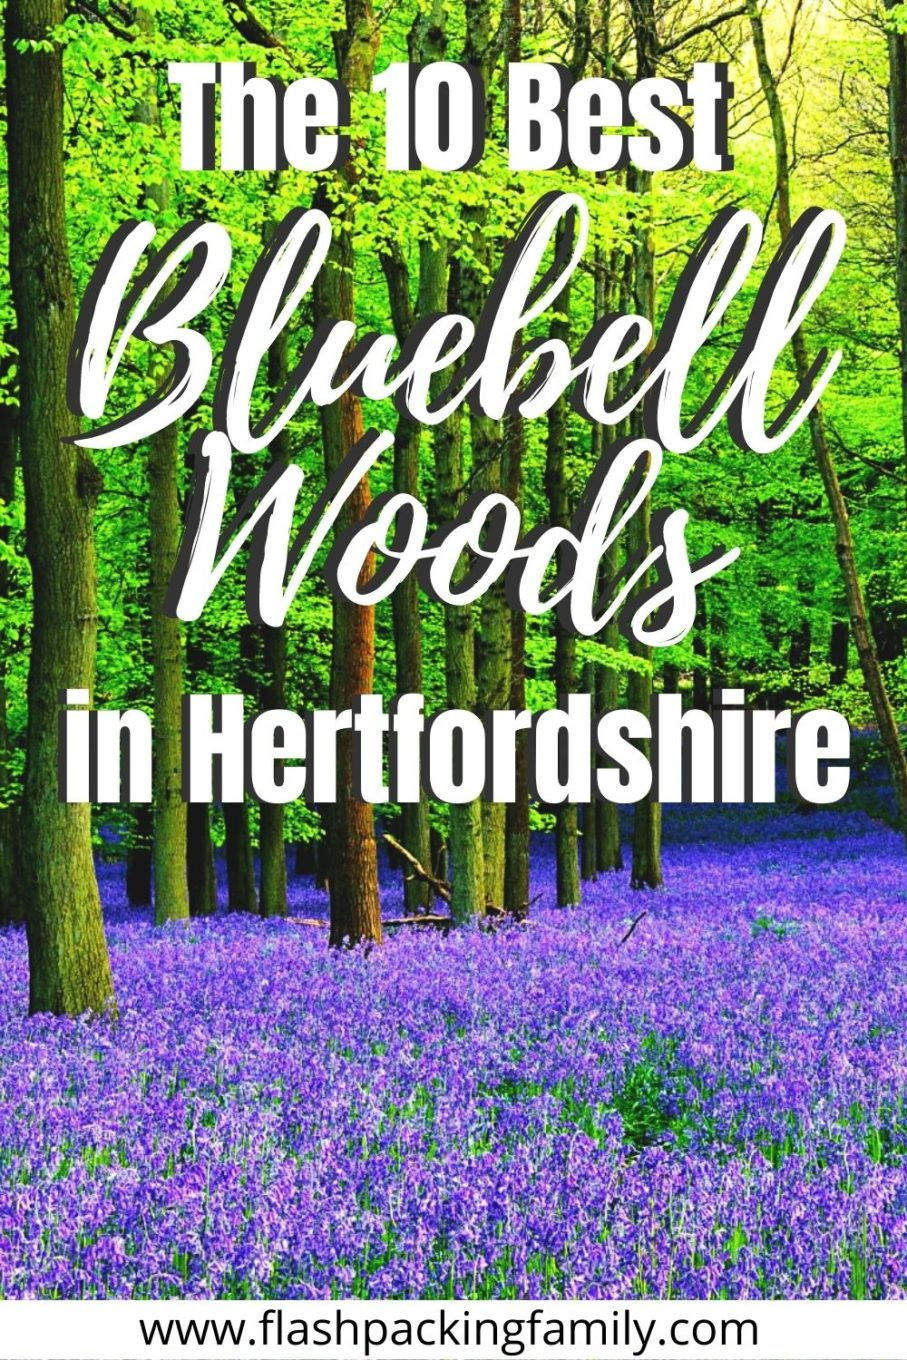 The 10 Best Bluebell Woods in Hertfordshire